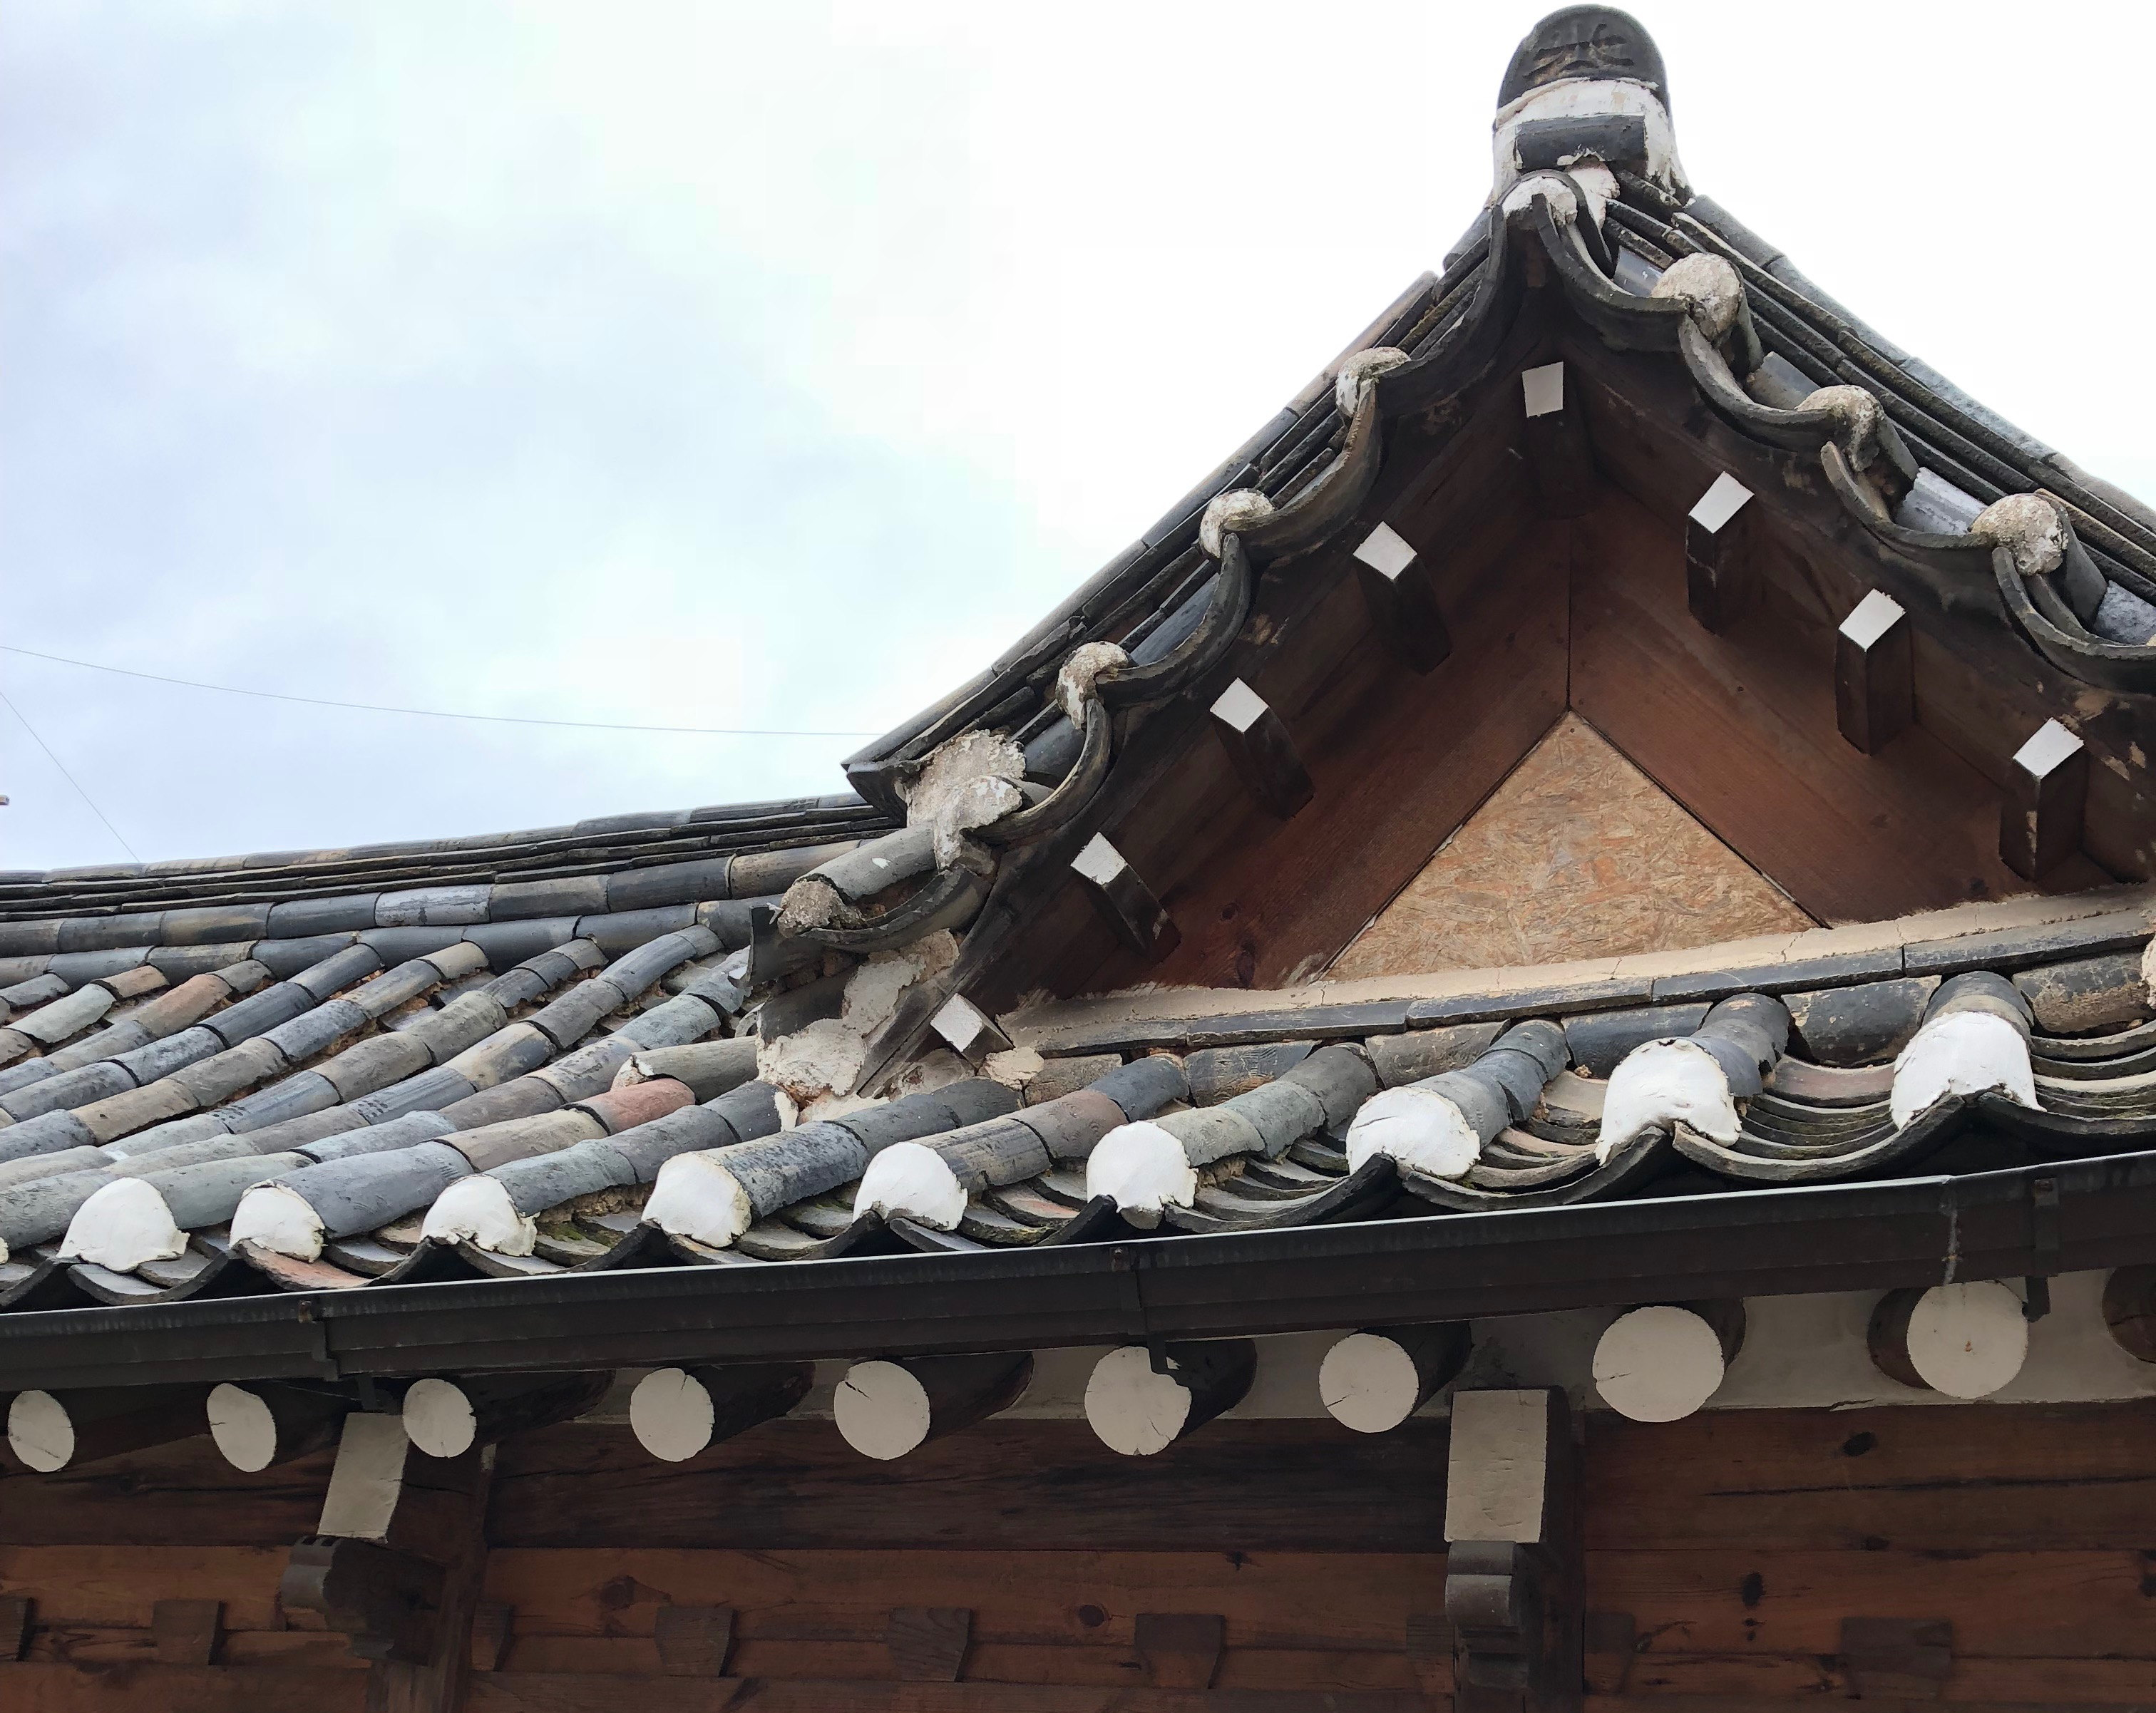 Traditional tiled roof on an old-style Korean house in Bukchon Hanok Village. Curved black tiles over white clay.